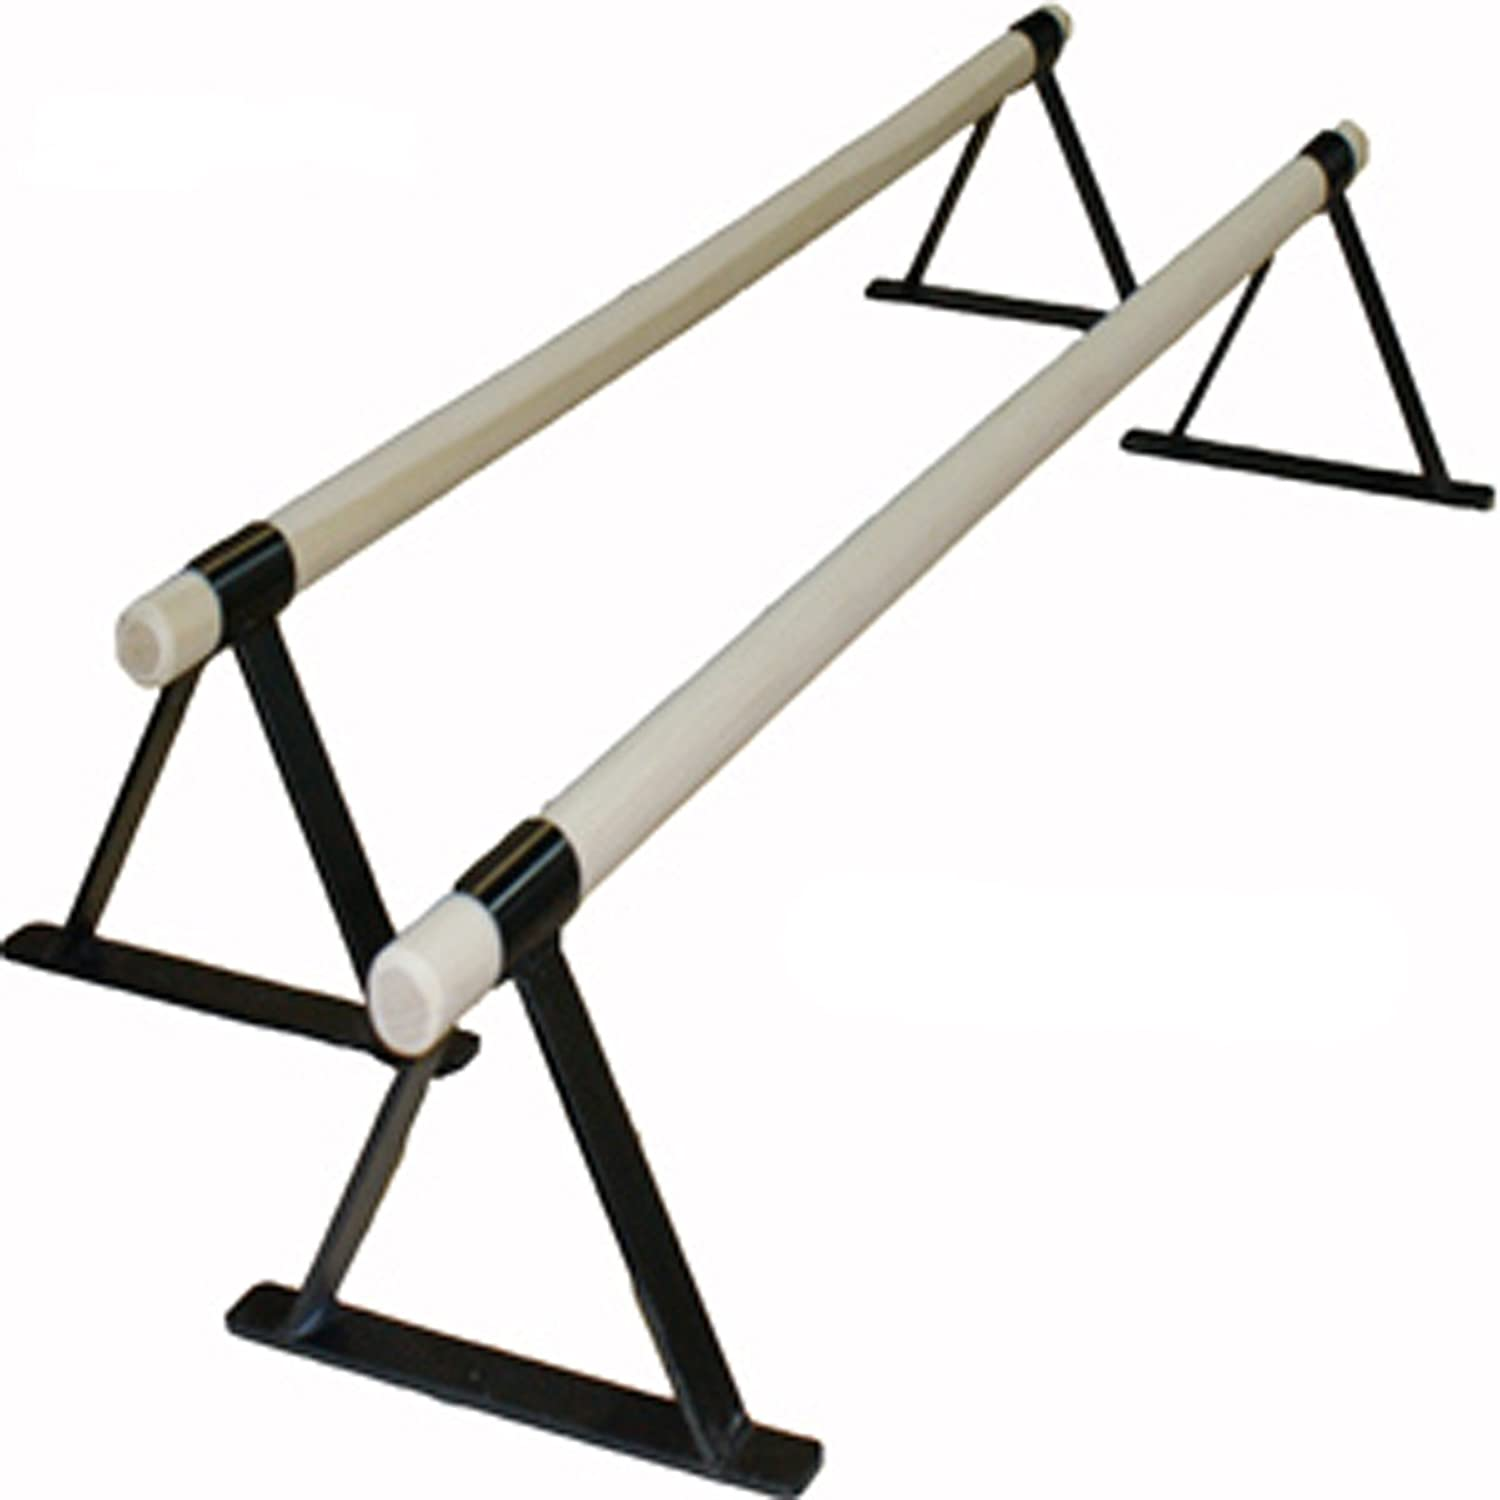 The Beam Store 48Inch Parallettes (Set of 2) Made in USA